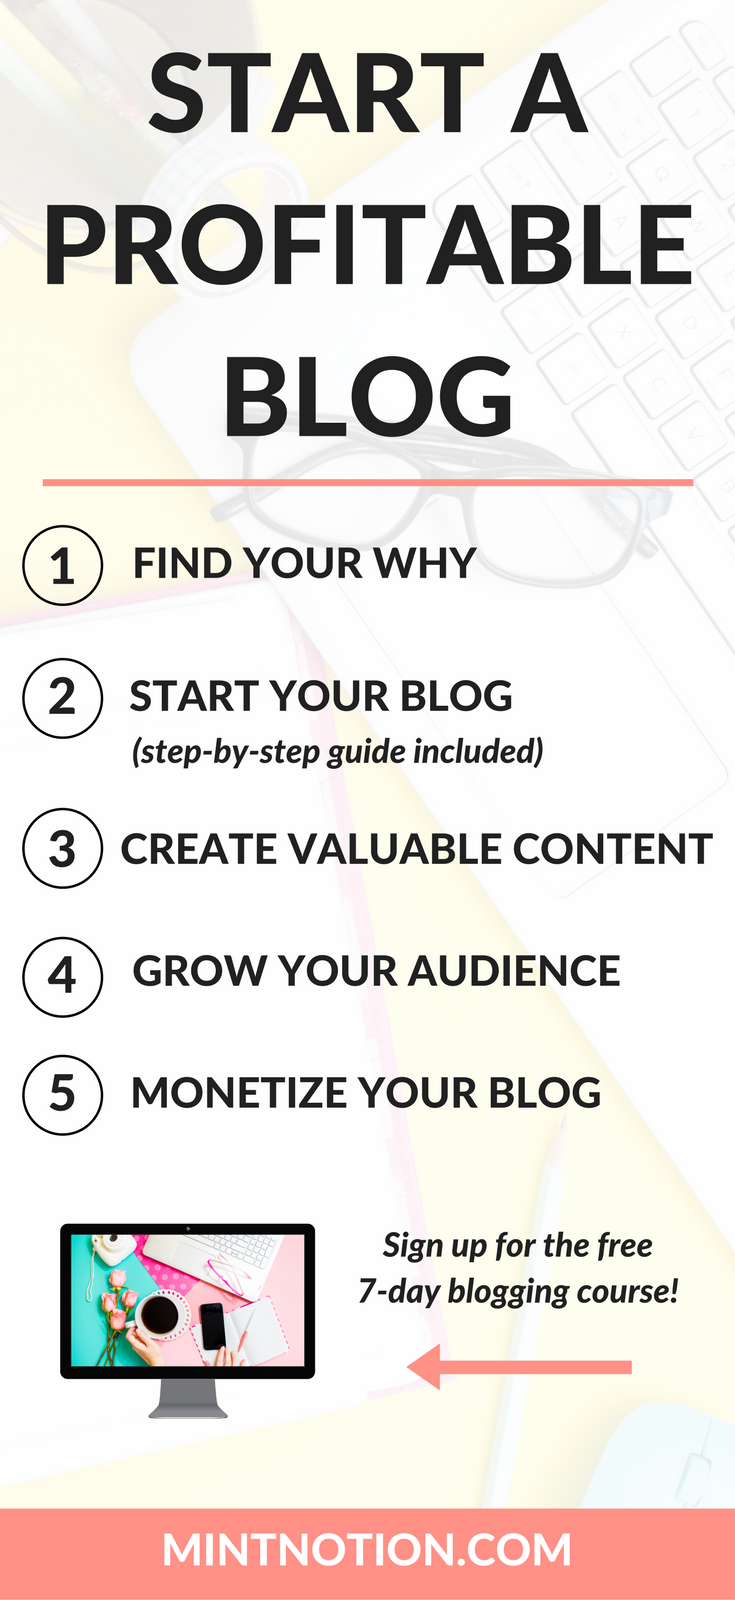 Start a profitable blog. Make money online. Extra income. Side hustles. Quit your job and work from home.